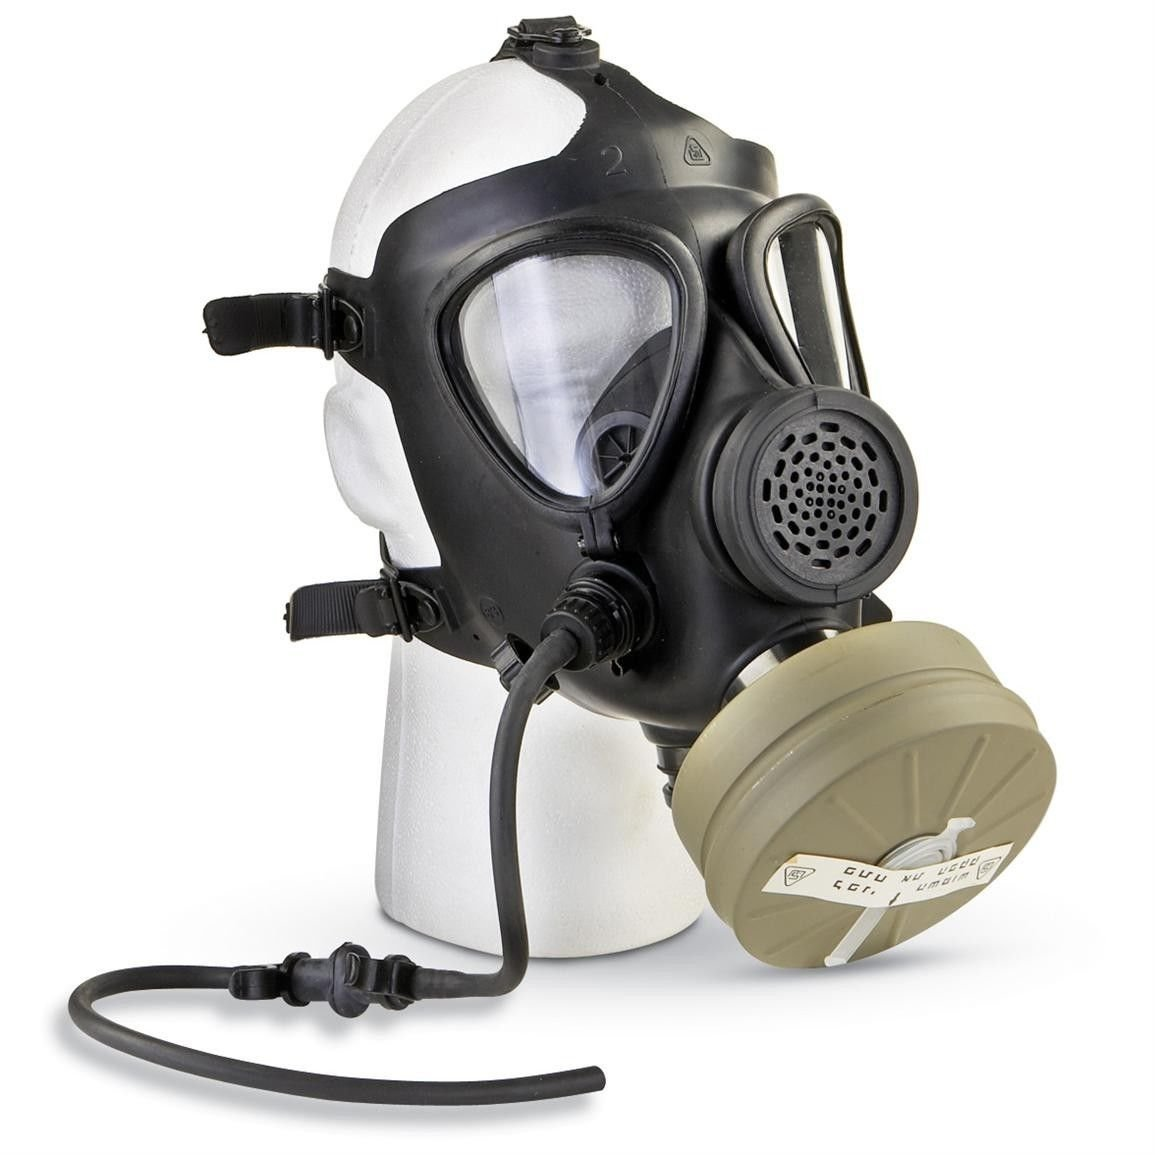 M15 Rubber Respirator Mask NBC Protection For Industrial Use, Chemical Handling, Painting, Welding, Prepping